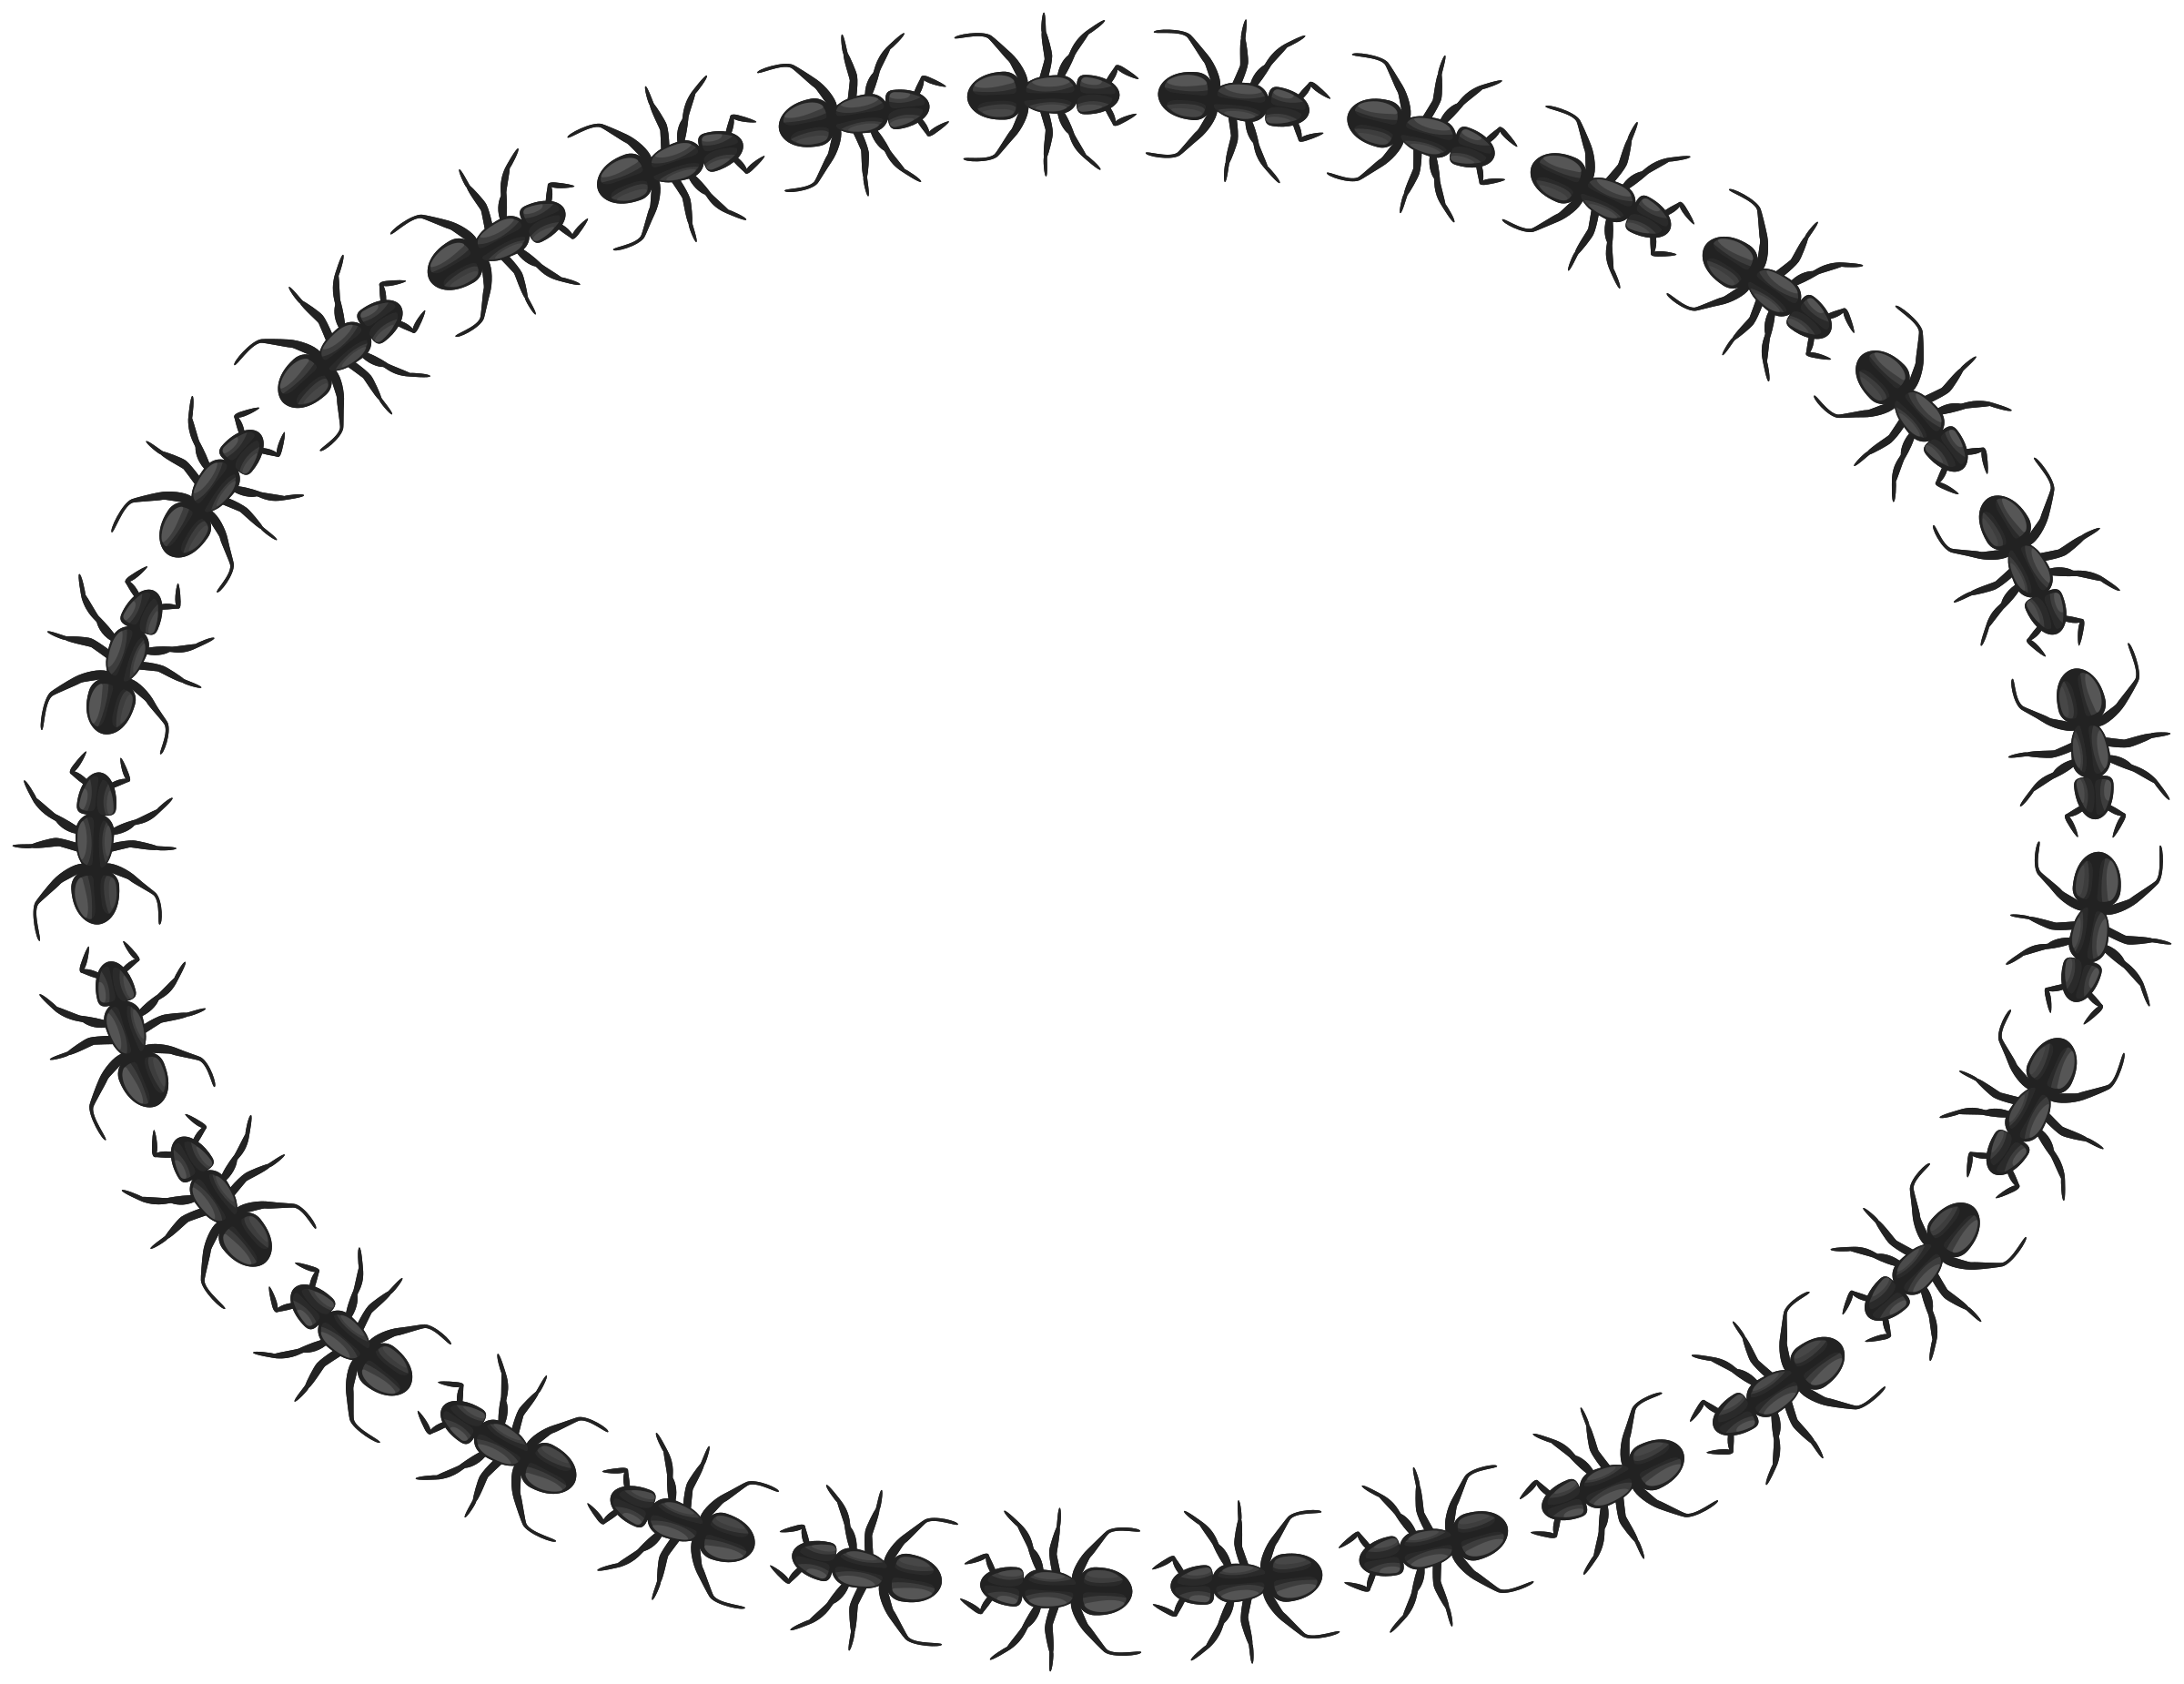 Oval border png. Clipart ant big image